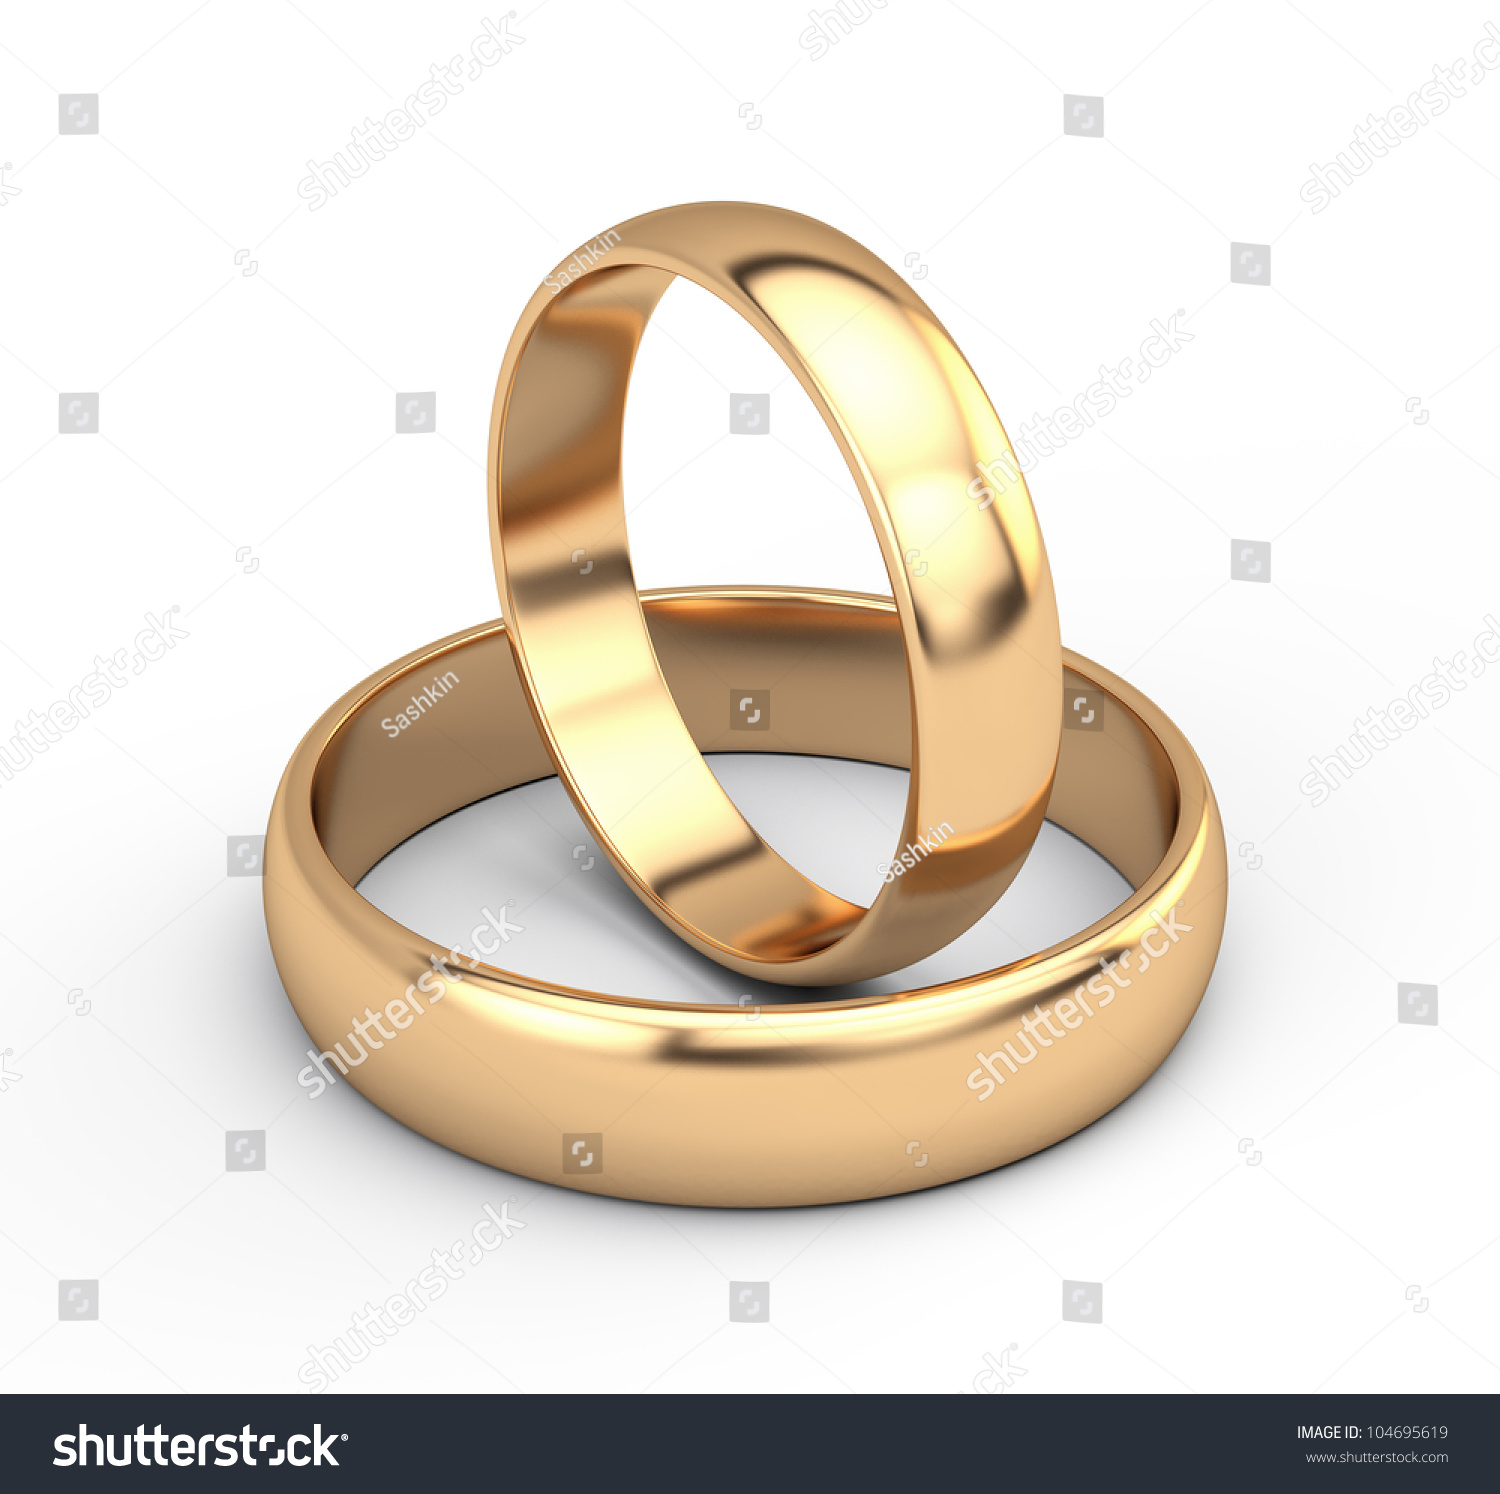 golden photo wife holiday locket couple married two money bride love white together diamond fashion anniversary rings engagement pair symbol en husband metal jewelry images romance ring gold commitment jewellery band romantic valentine free marry ceremony wedding shiny marriage accessory wed jewel silver celebration